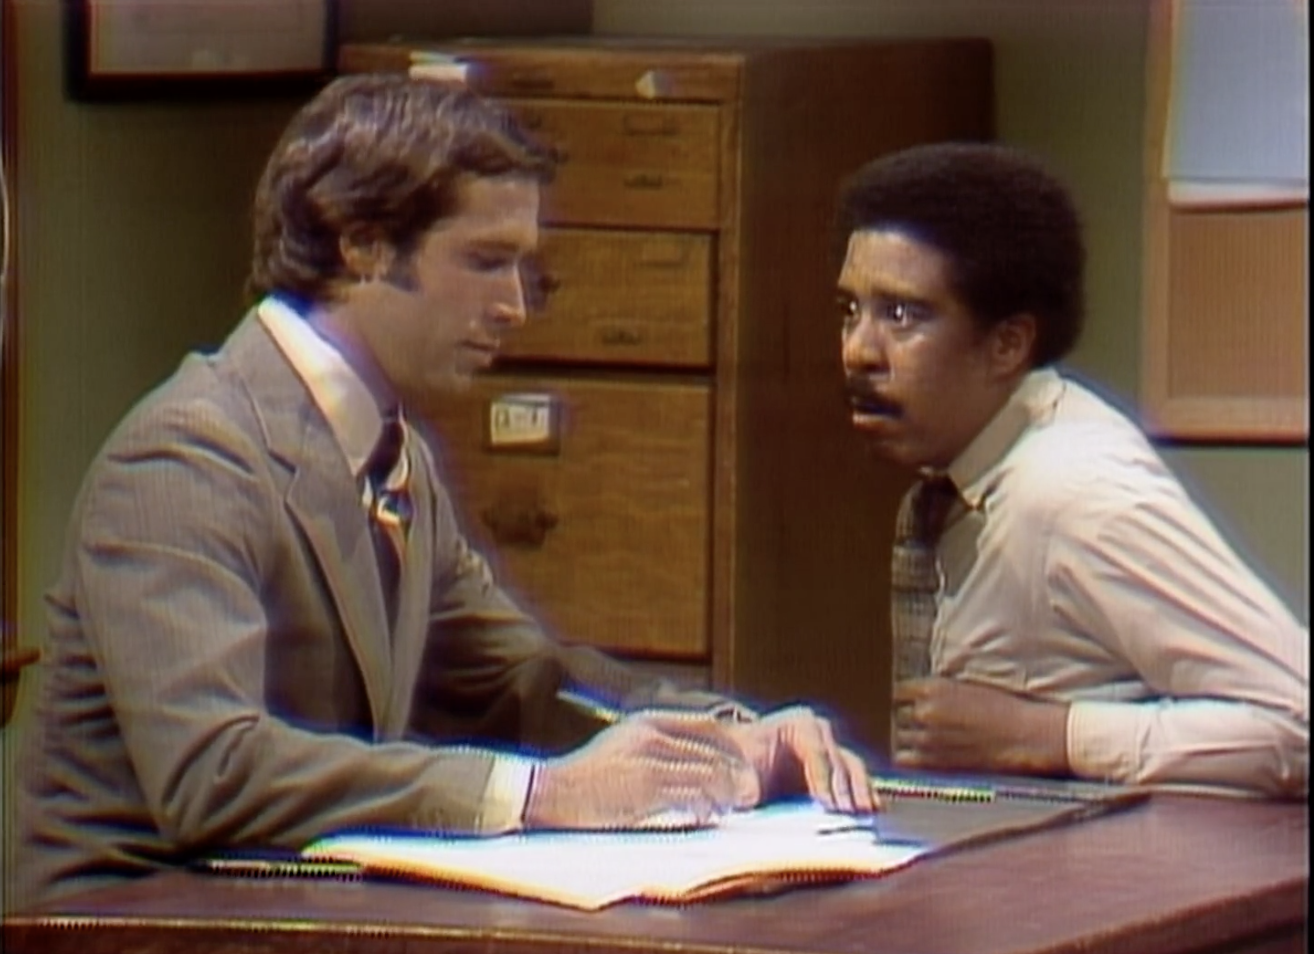 Pryor and Chase in the sketch